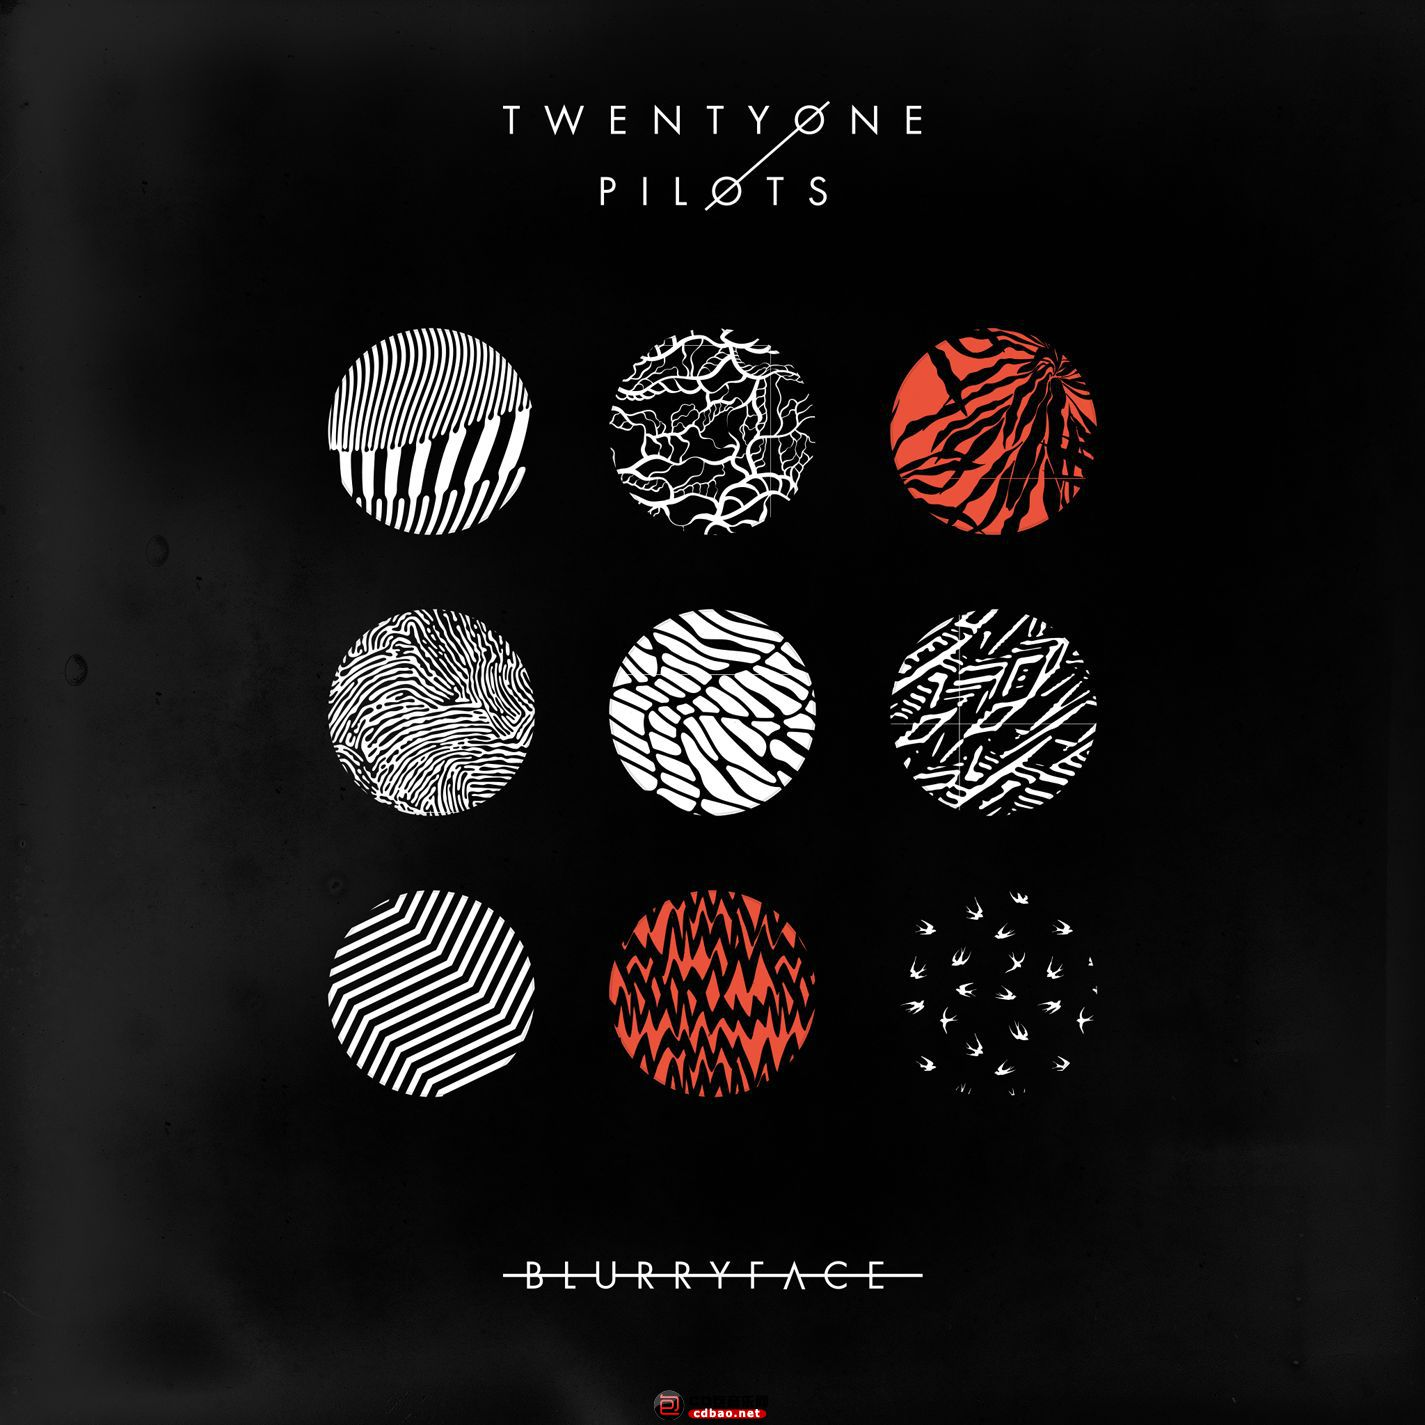 twenty_one_pilots-blurryface.jpg